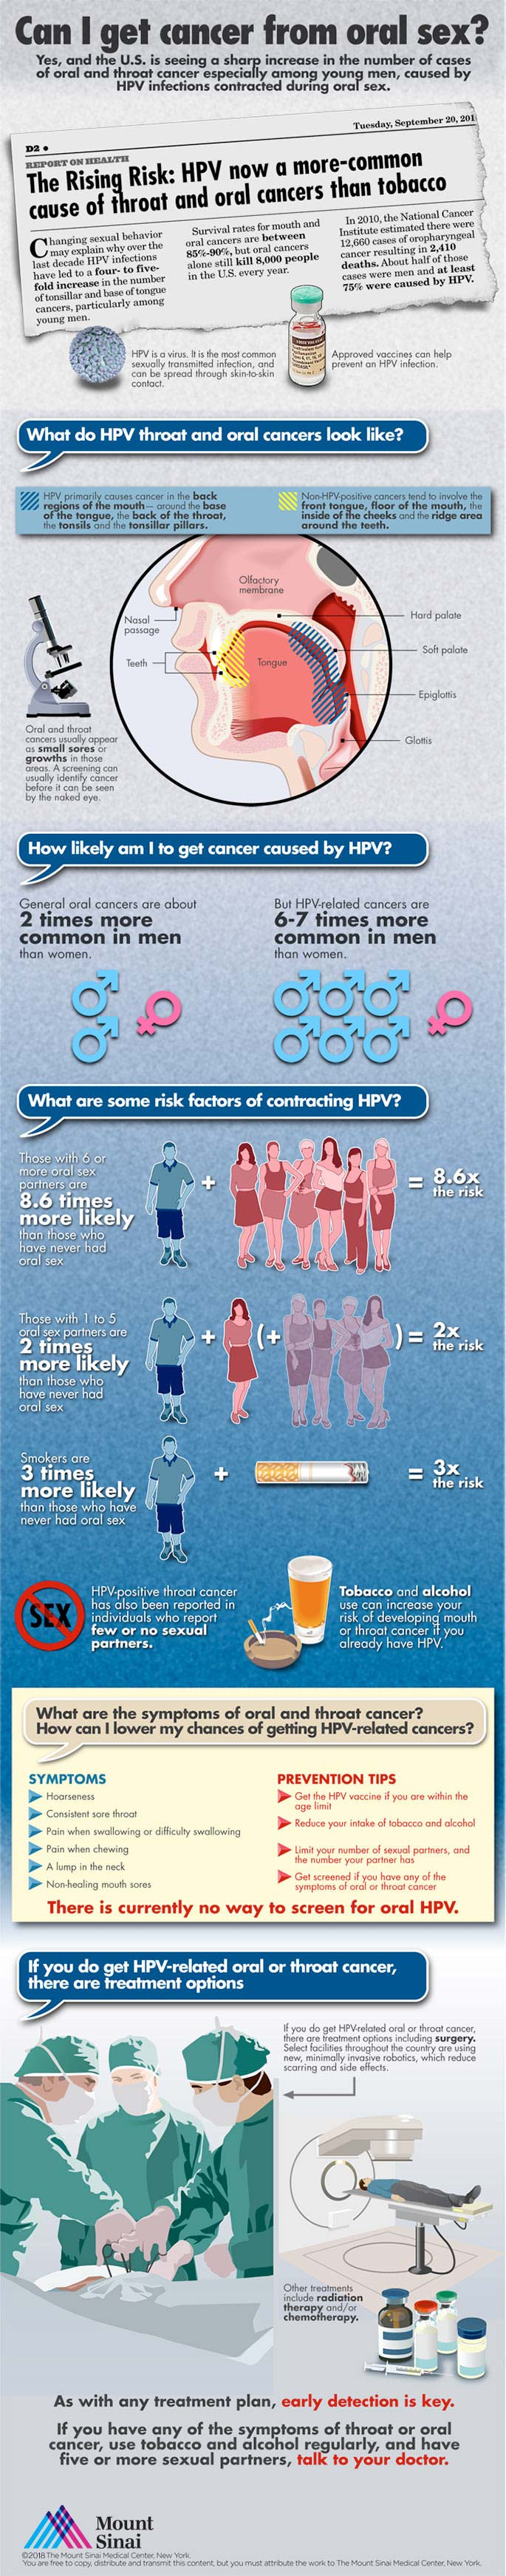 HPV Oral Cancer Infographic | Mount Sinai - New York